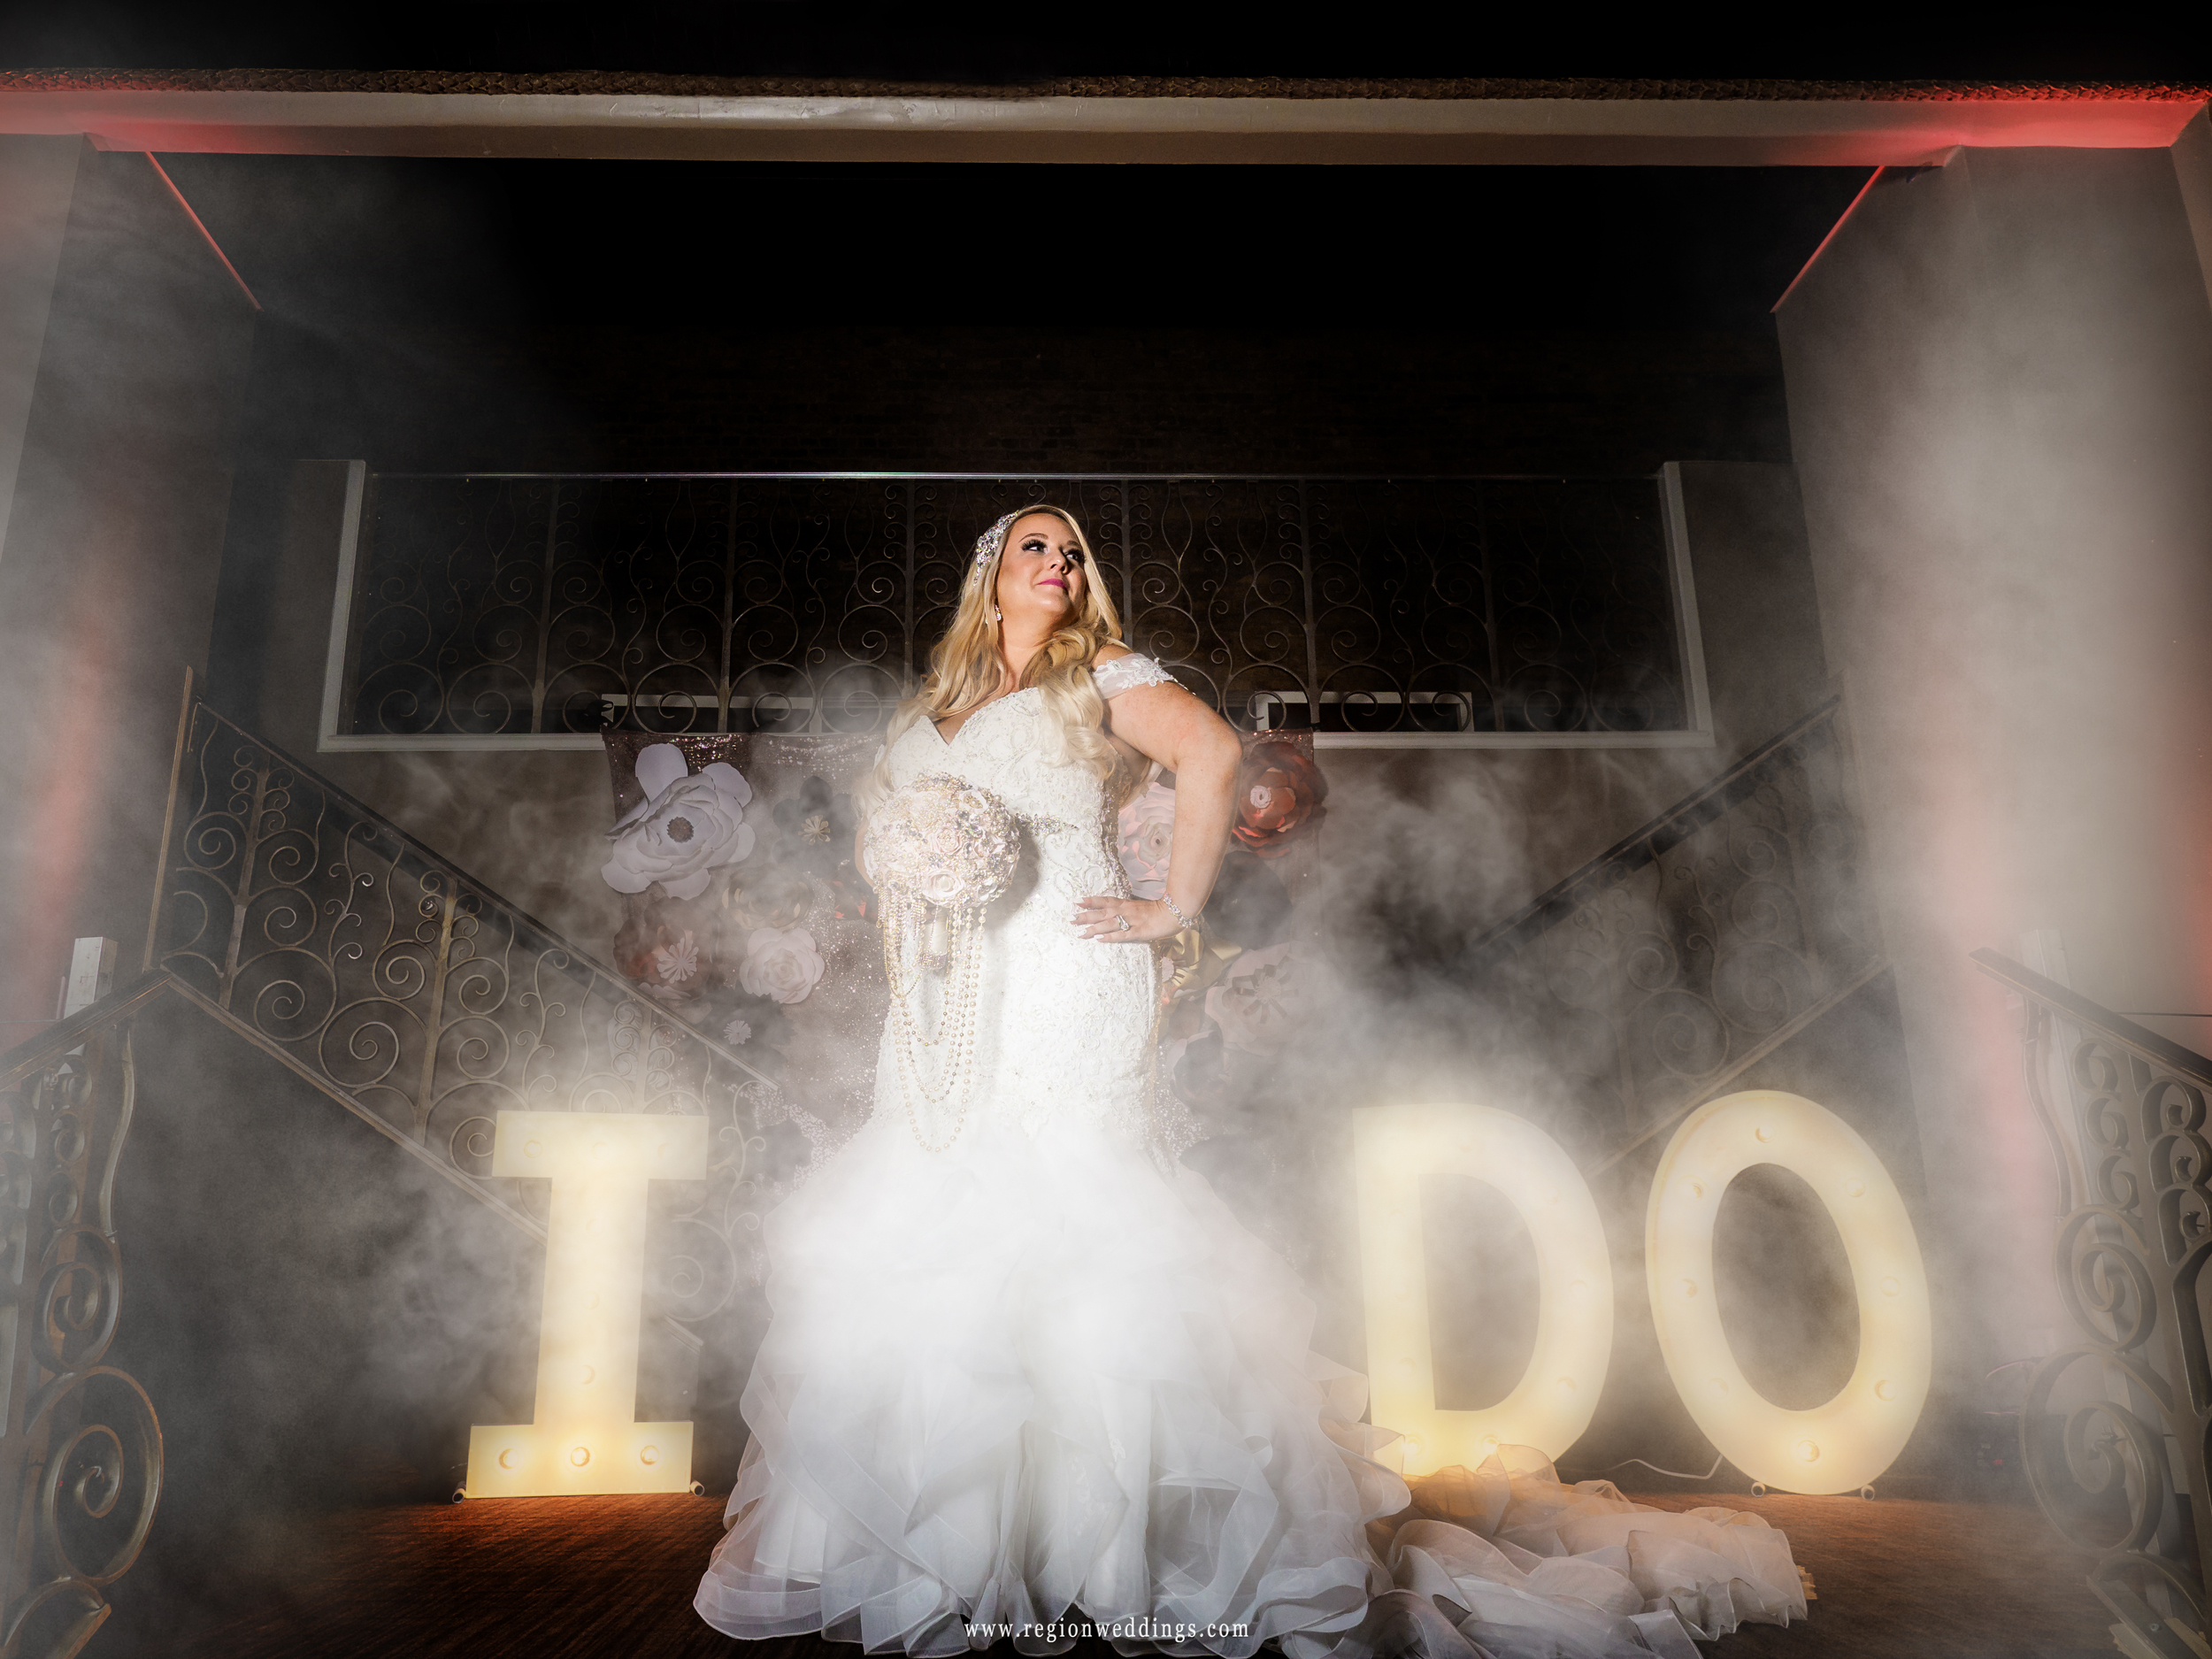 The bride says 'I Do' at The Allure while surrounded by fog.